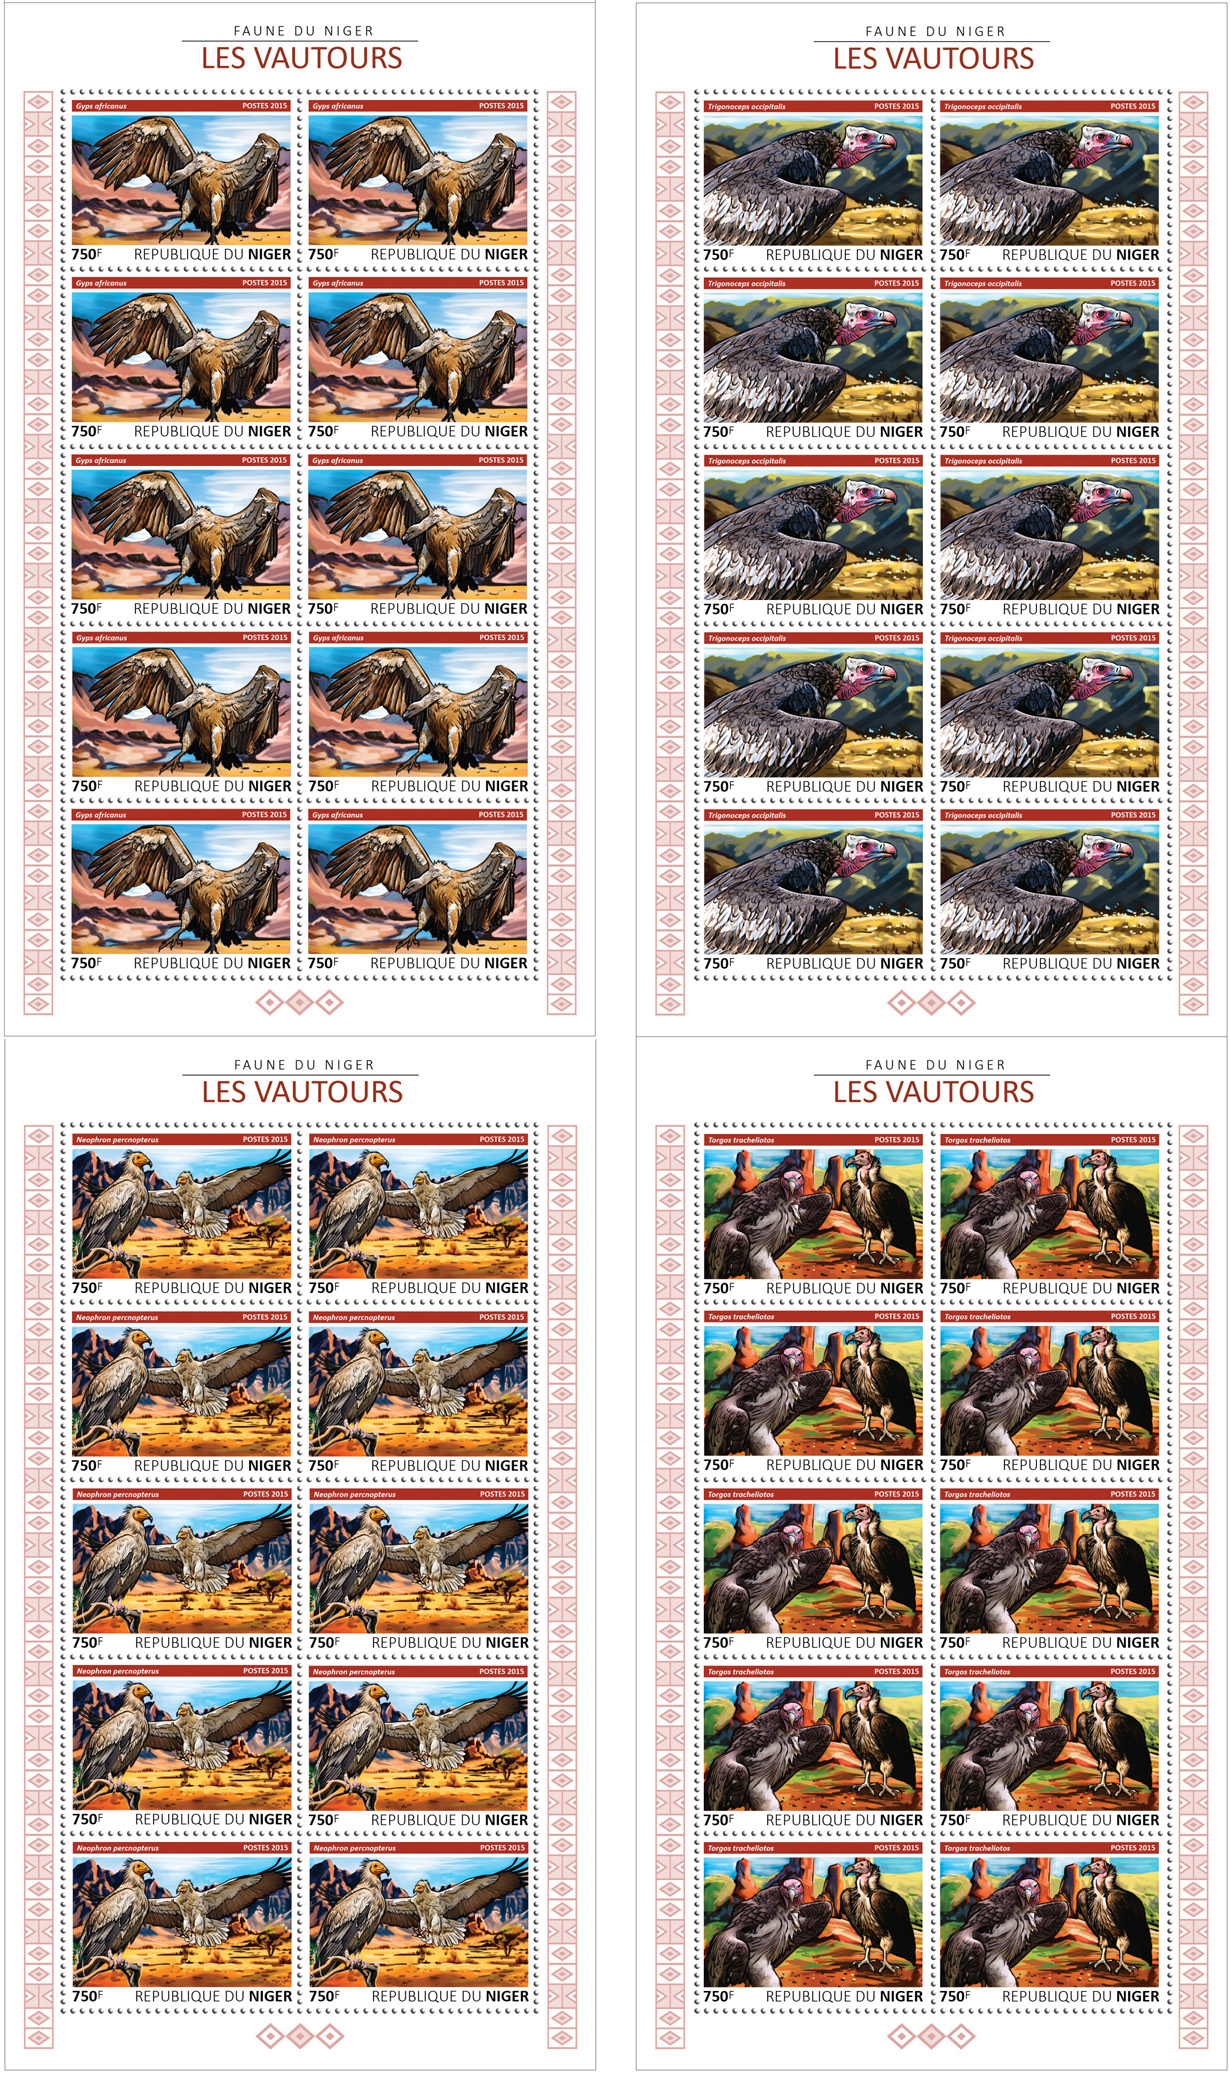 Vultures 4x10v - Issue of Niger postage stamps